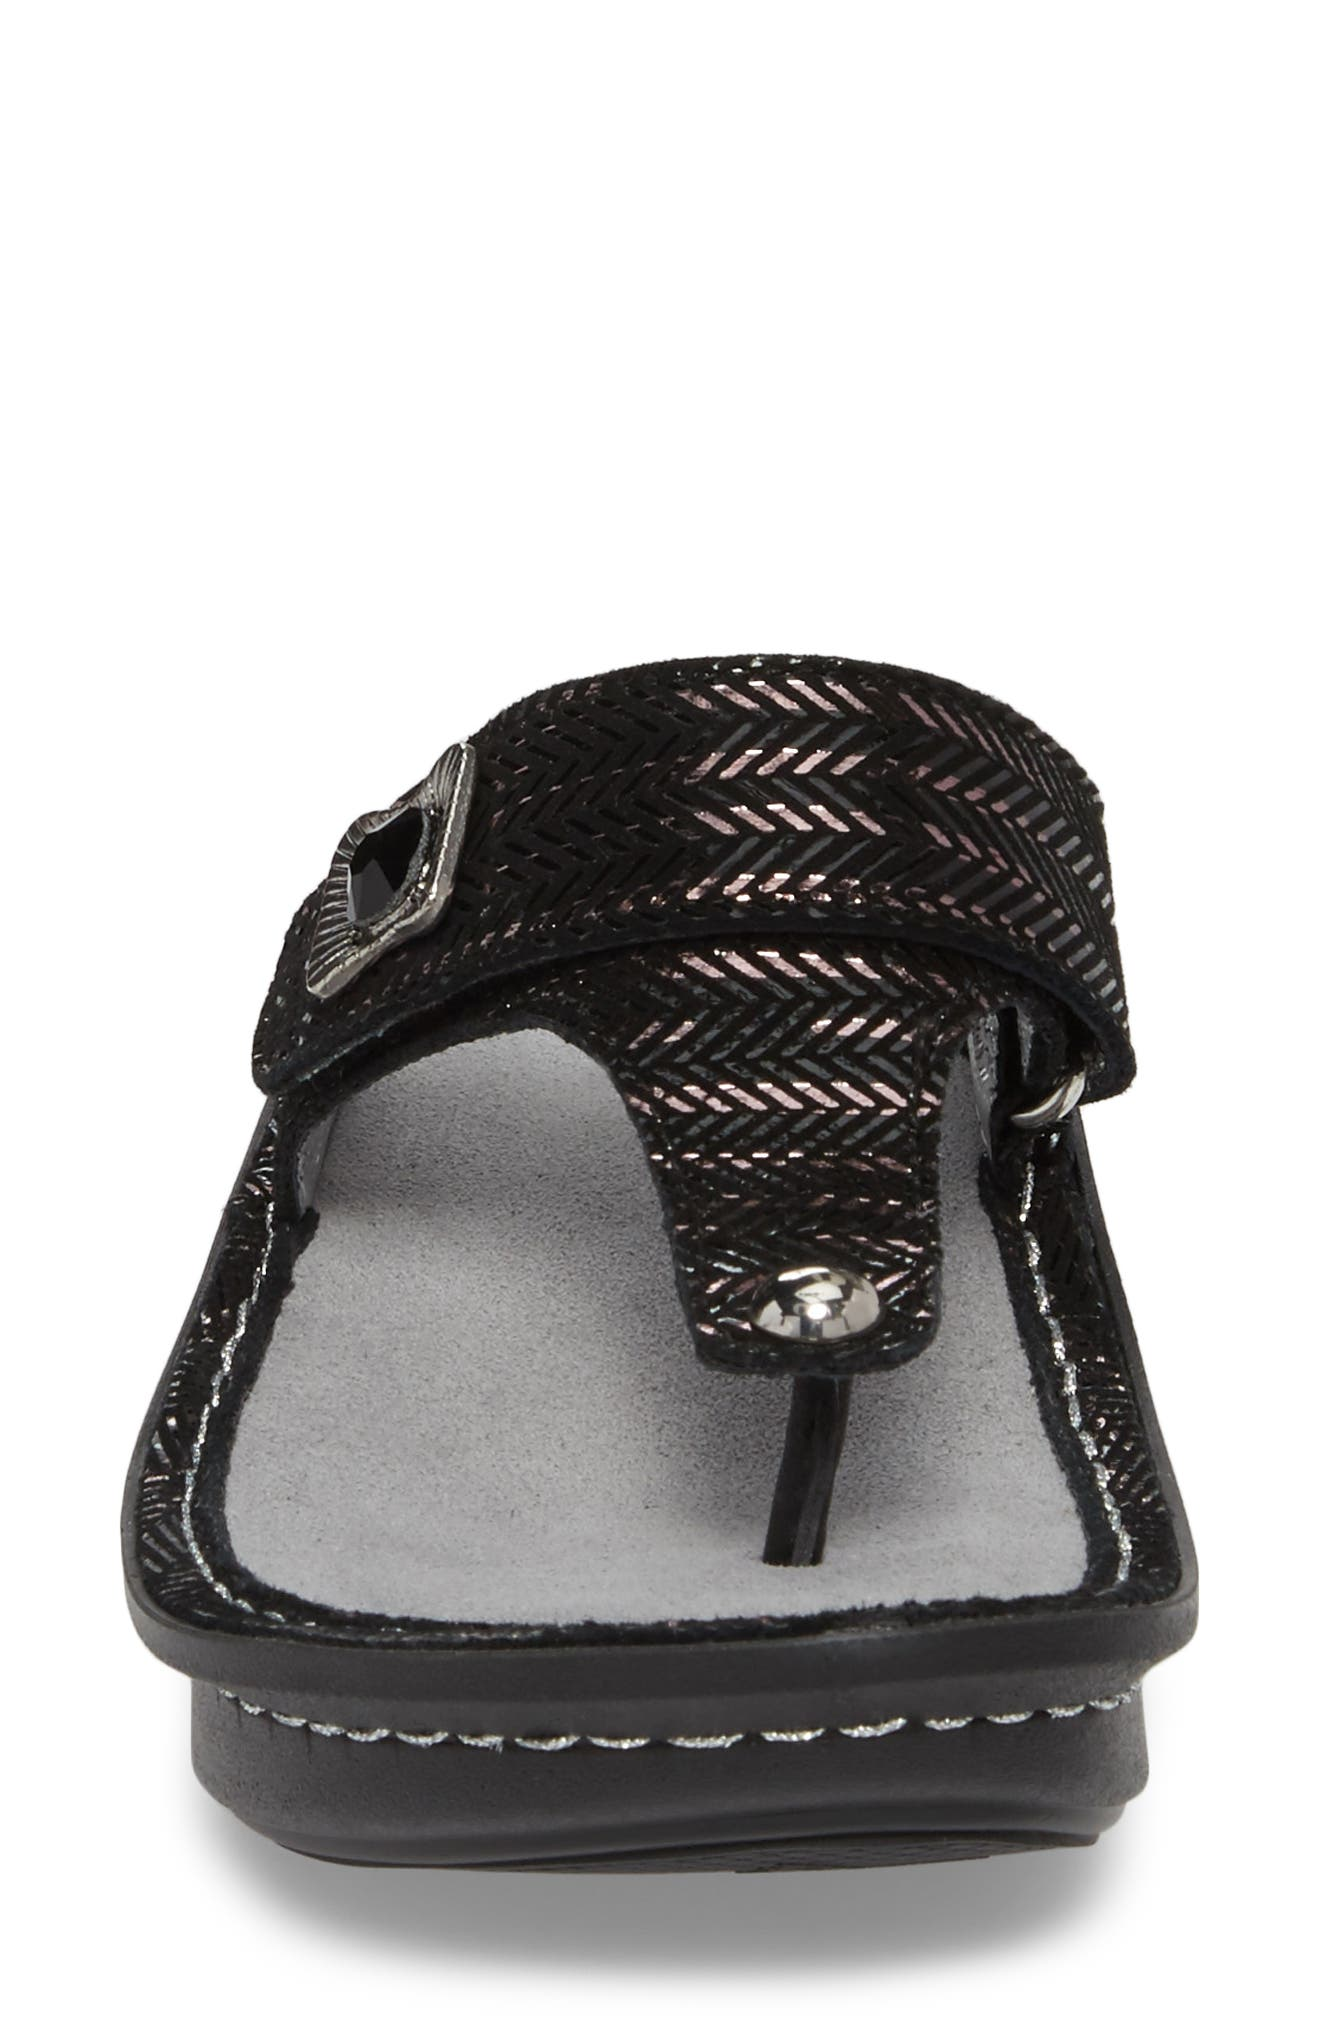 'Carina' Sandal,                             Alternate thumbnail 4, color,                             CHAINED BLACK LEATHER